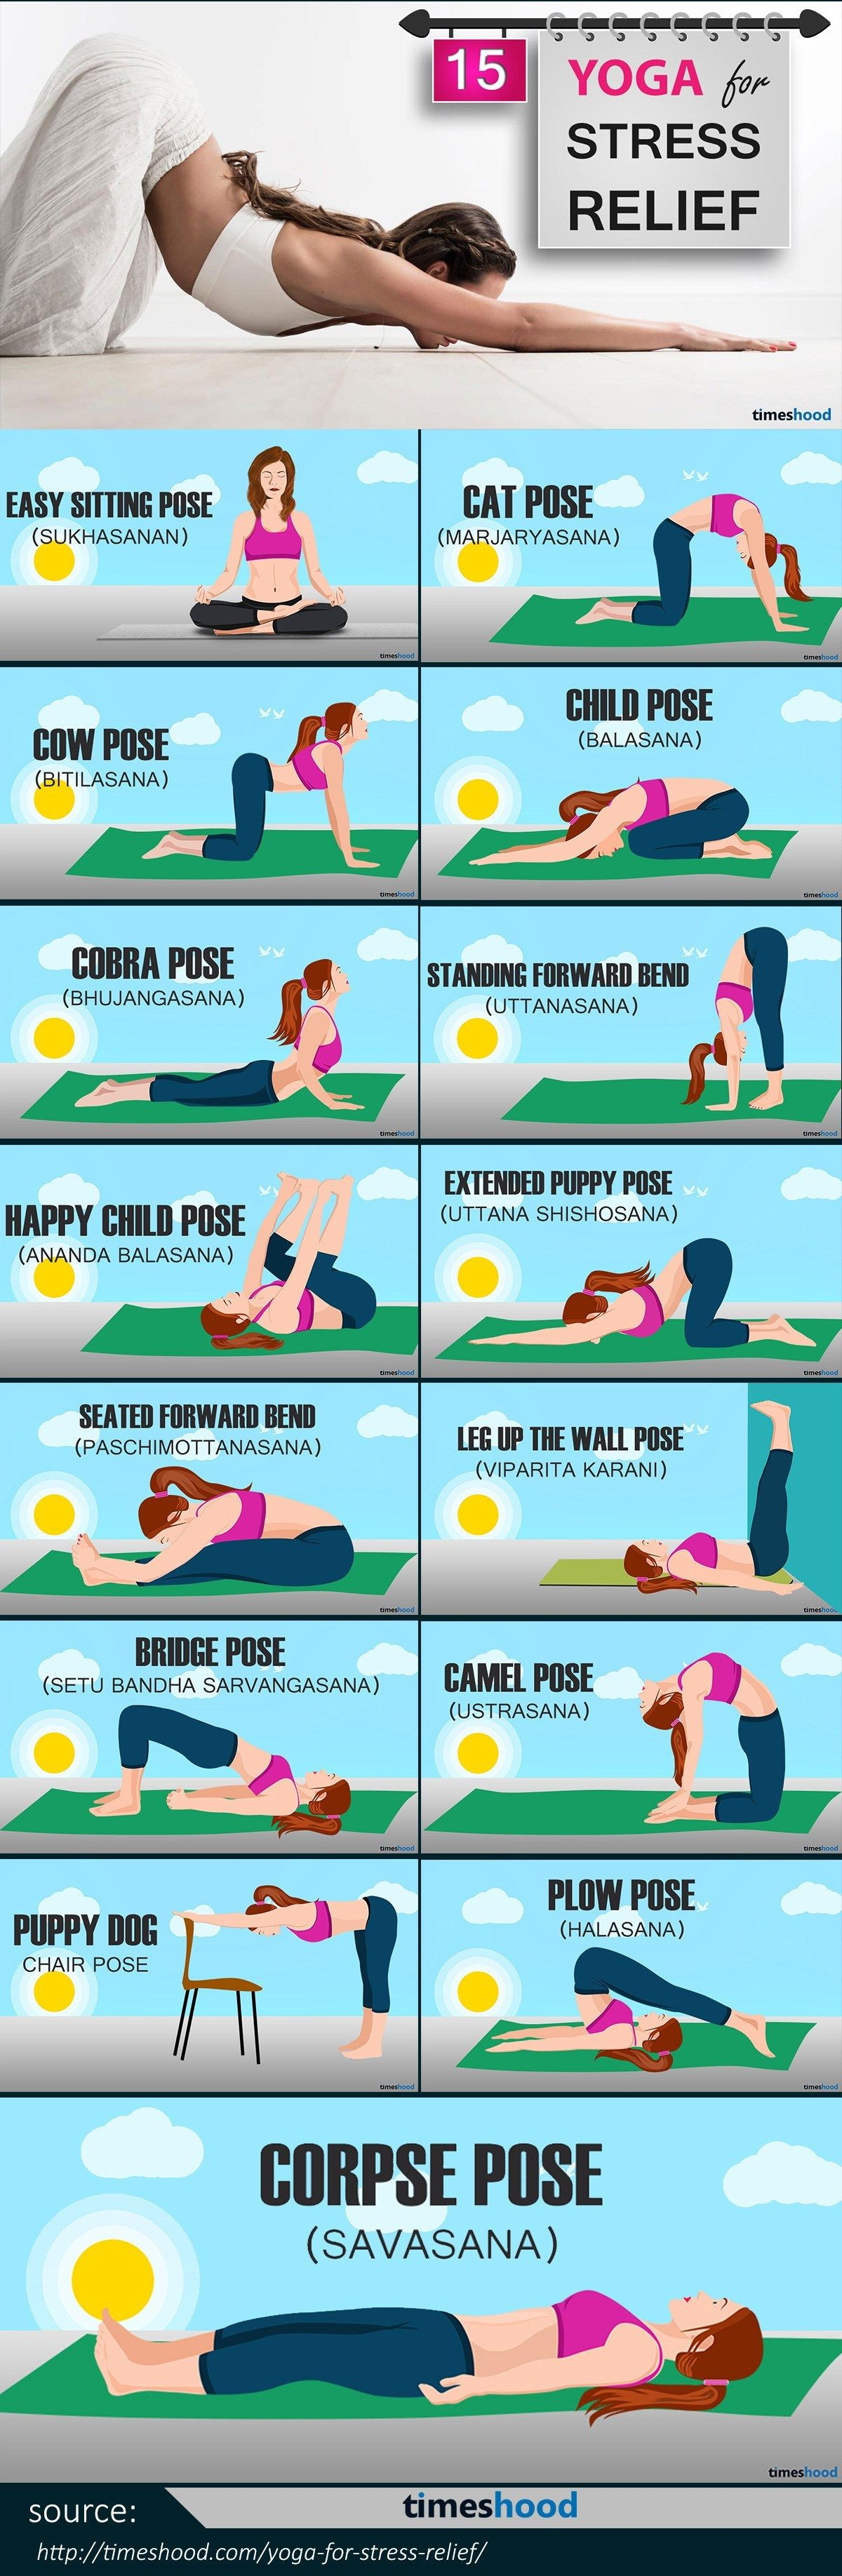 Yoga for Stress Relief: 15 Easy To Do Yoga Pose for Instant Relaxation #fitnessexercisesathome